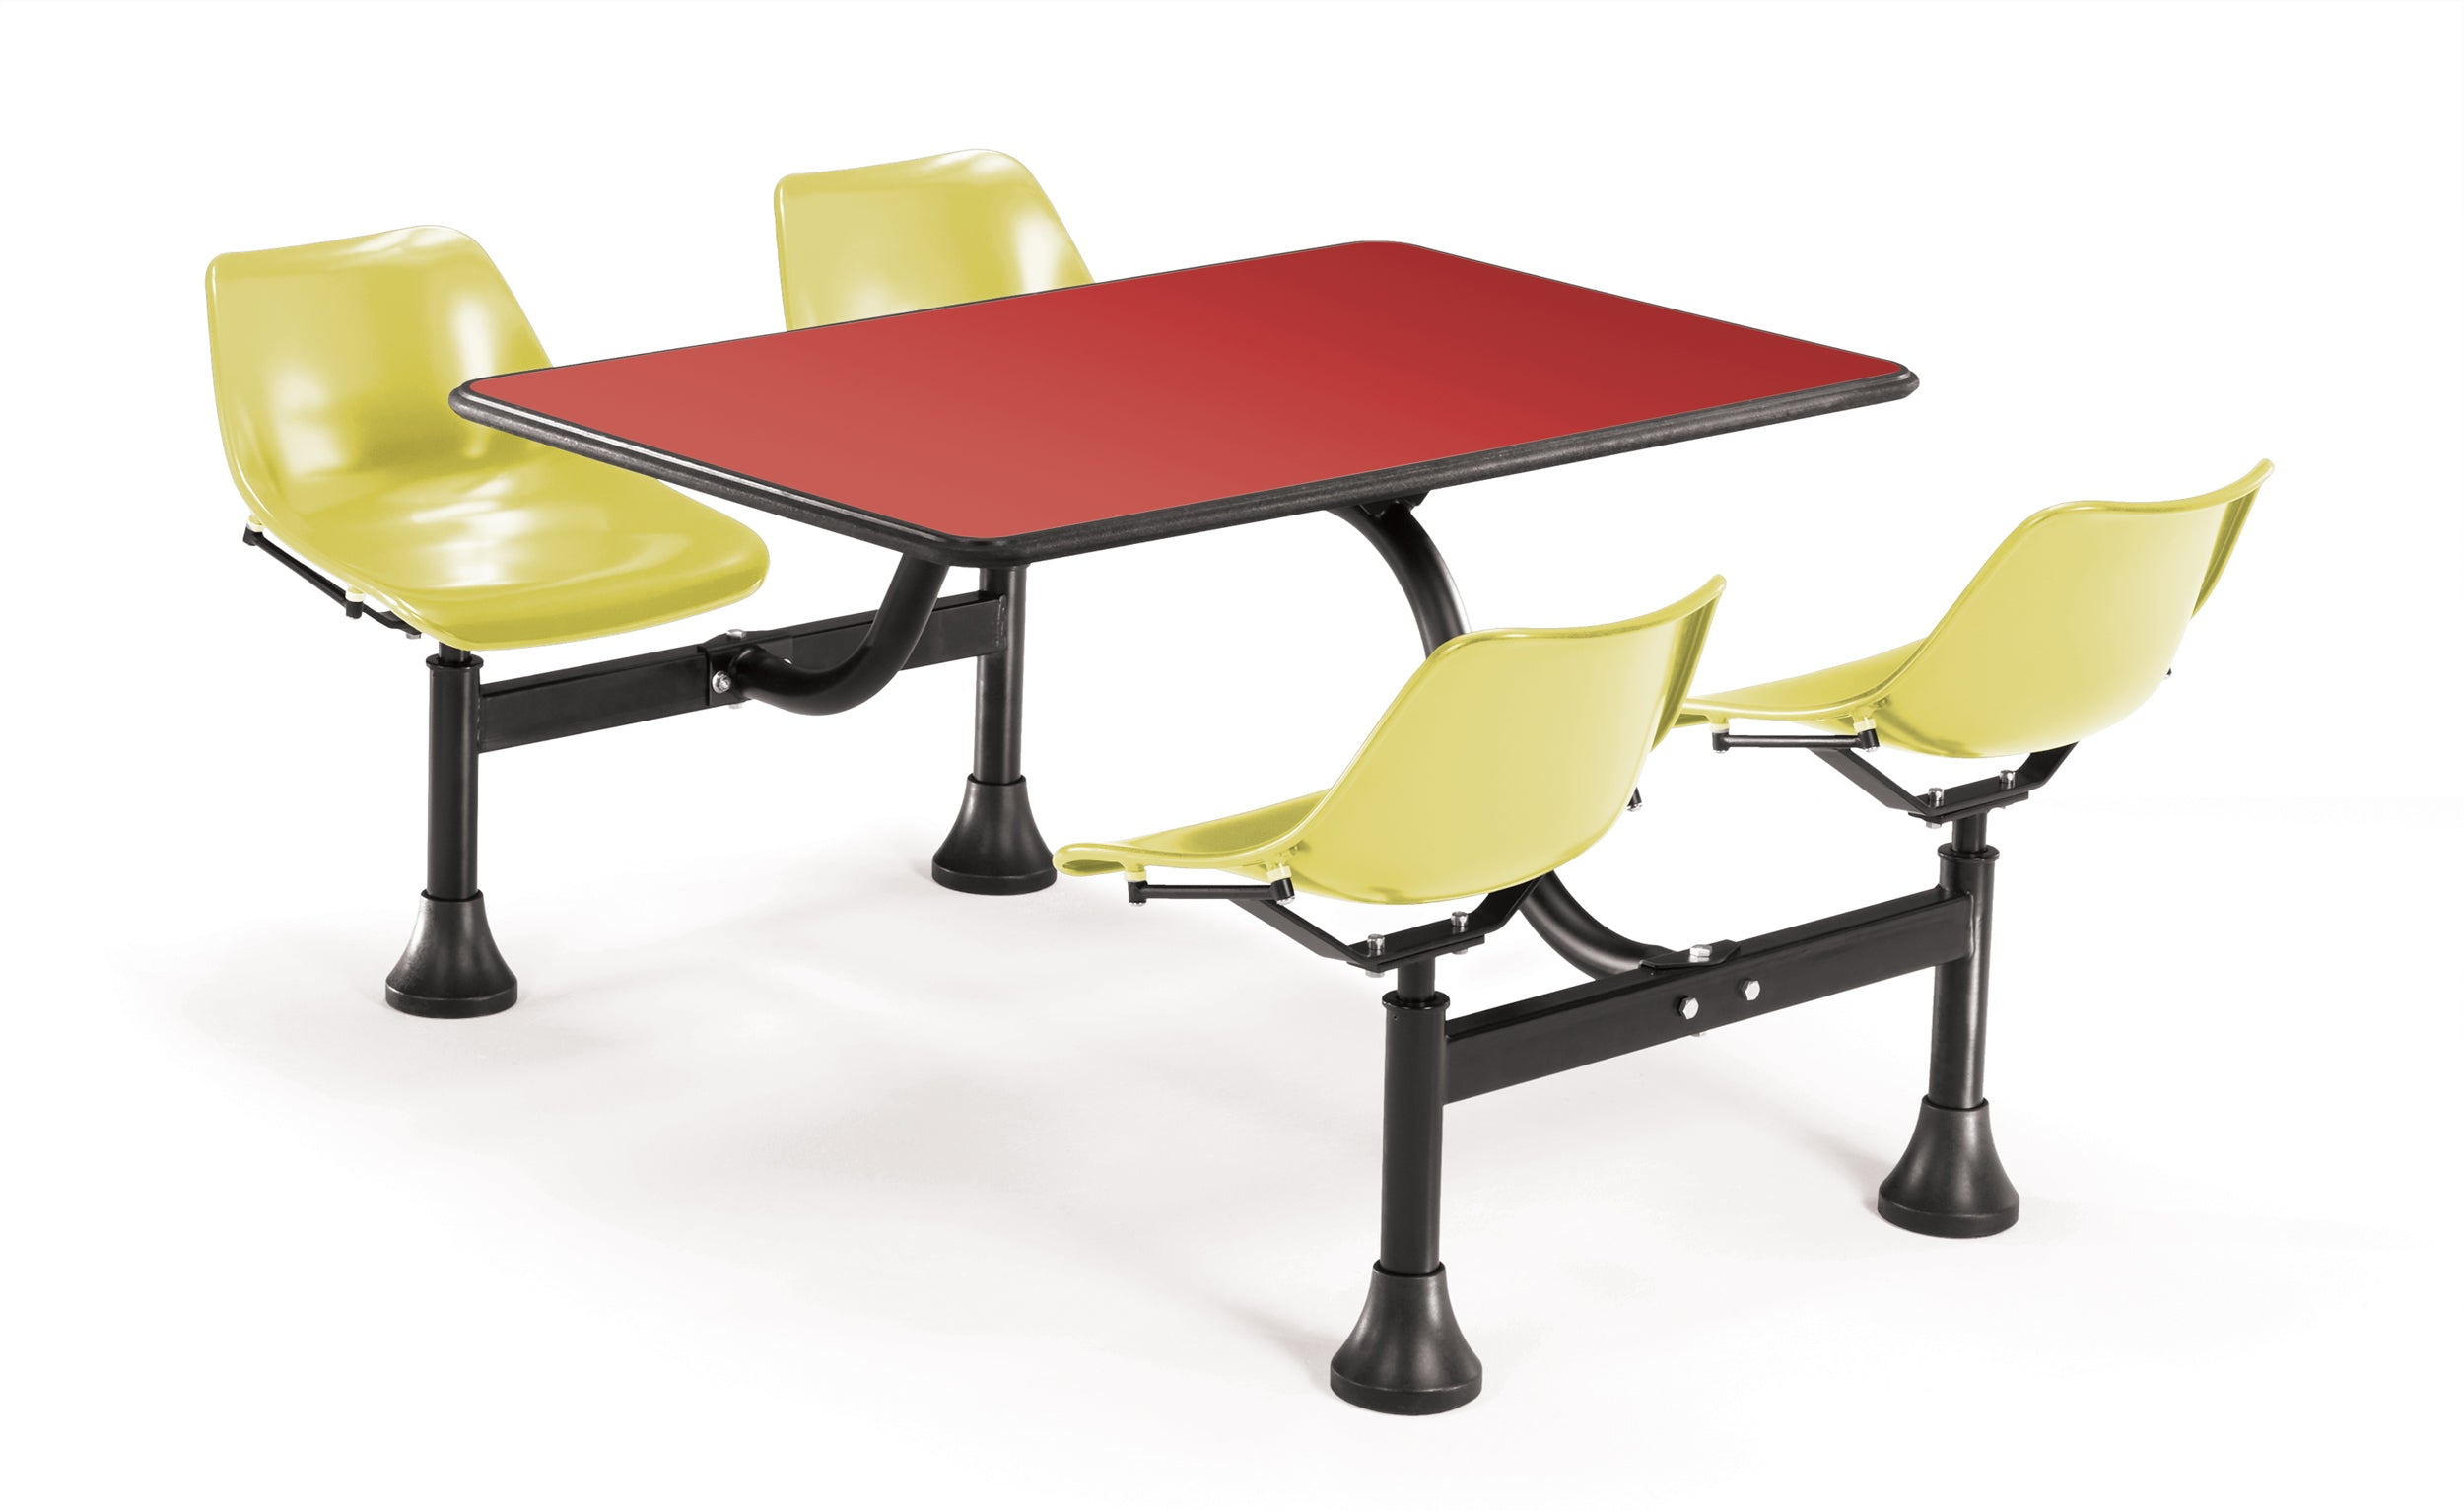 Model 1002 Cluster Table & Chairs Yellow Seat 24 Inch x 48 Inch Top